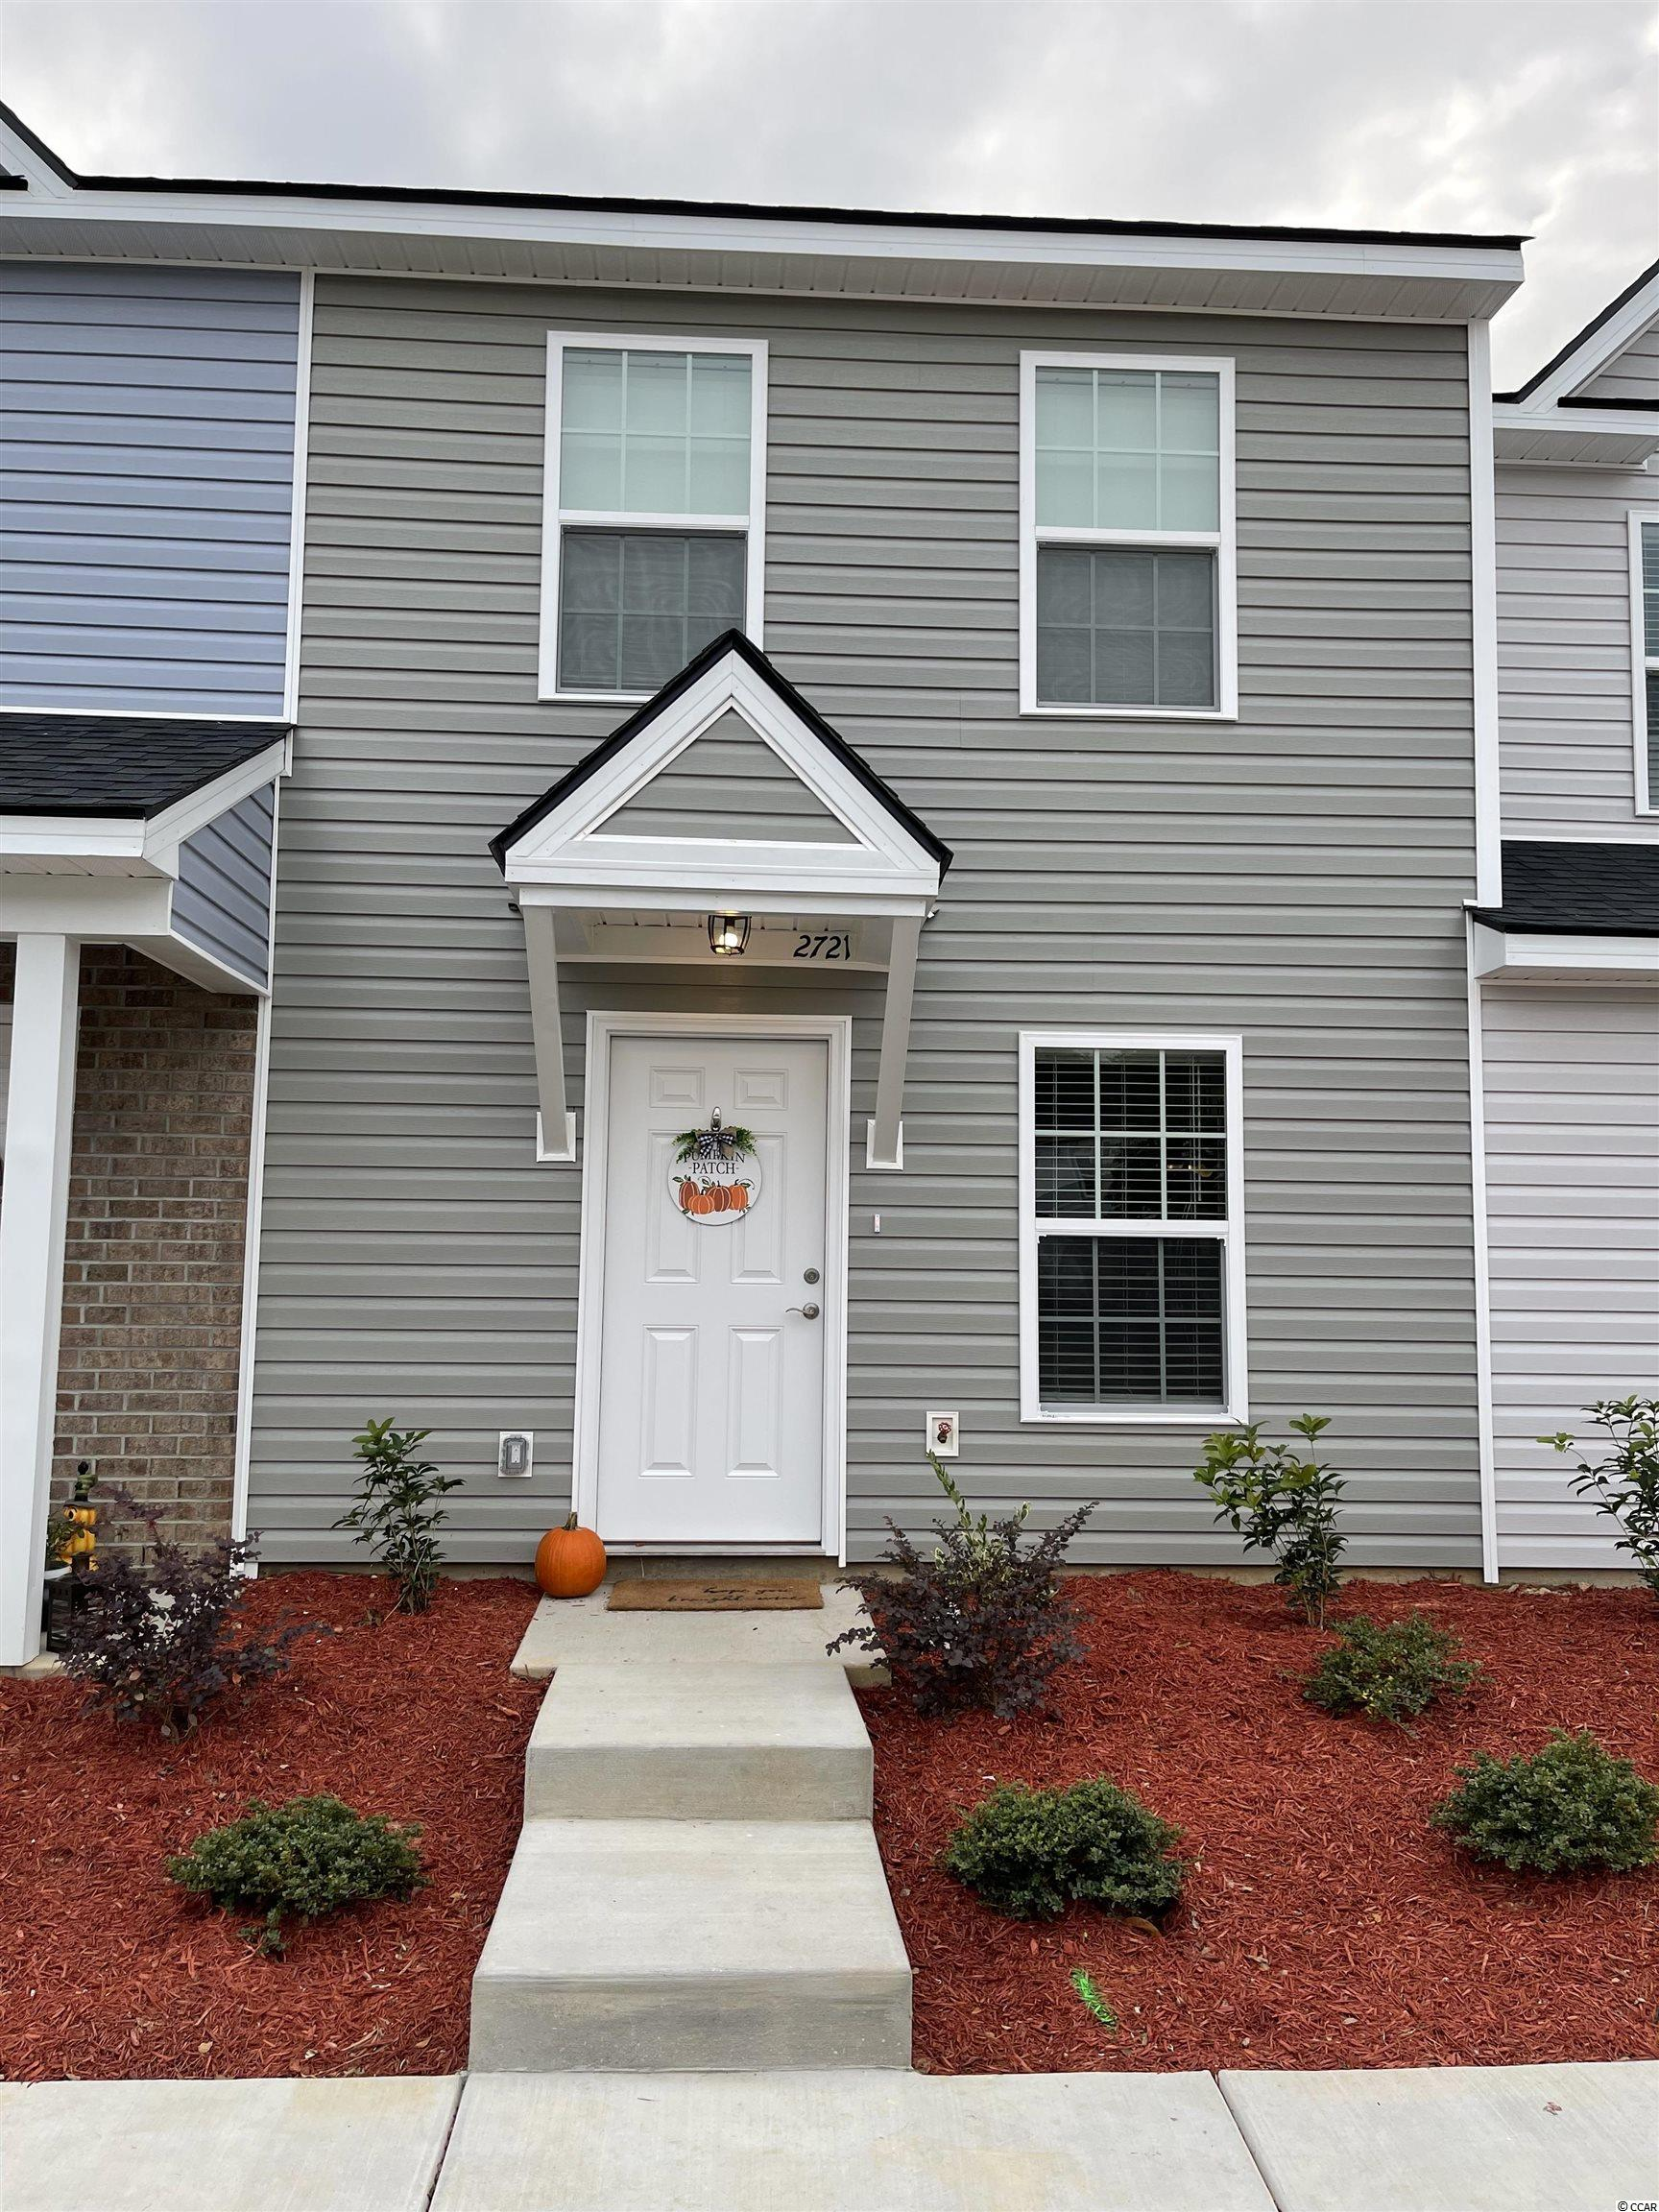 Take advantage of new construction townhomes in an already established neighborhood located minutes from the heart of Conway, South Carolina. Affordable, family living at it's best, the Hartwell floor plan features 2 bedrooms, 2.5 bathrooms with a brick exterior, granite countertops with a stylish backsplash accent, stainless steel appliances, and luxury vinyl plank flooring throughout the main living areas. Not to mention an on-site clubhouse and pool ready for your enjoyment. The idyllic location is situated within minutes from local schools as well as a short 2 mile walk or bike ride to the picturesque, Historic downtown Conway full of activities, shopping and dining. Rentals are allowed, so if you are looking for an investment property, Midtown Village Townhomes are the perfect opportunity to expand your portfolio with a long-term rental or vacation getaway. Construction is underway so schedule a showing today! Square footage is approximate and not guaranteed. Buyer is responsible for verification.